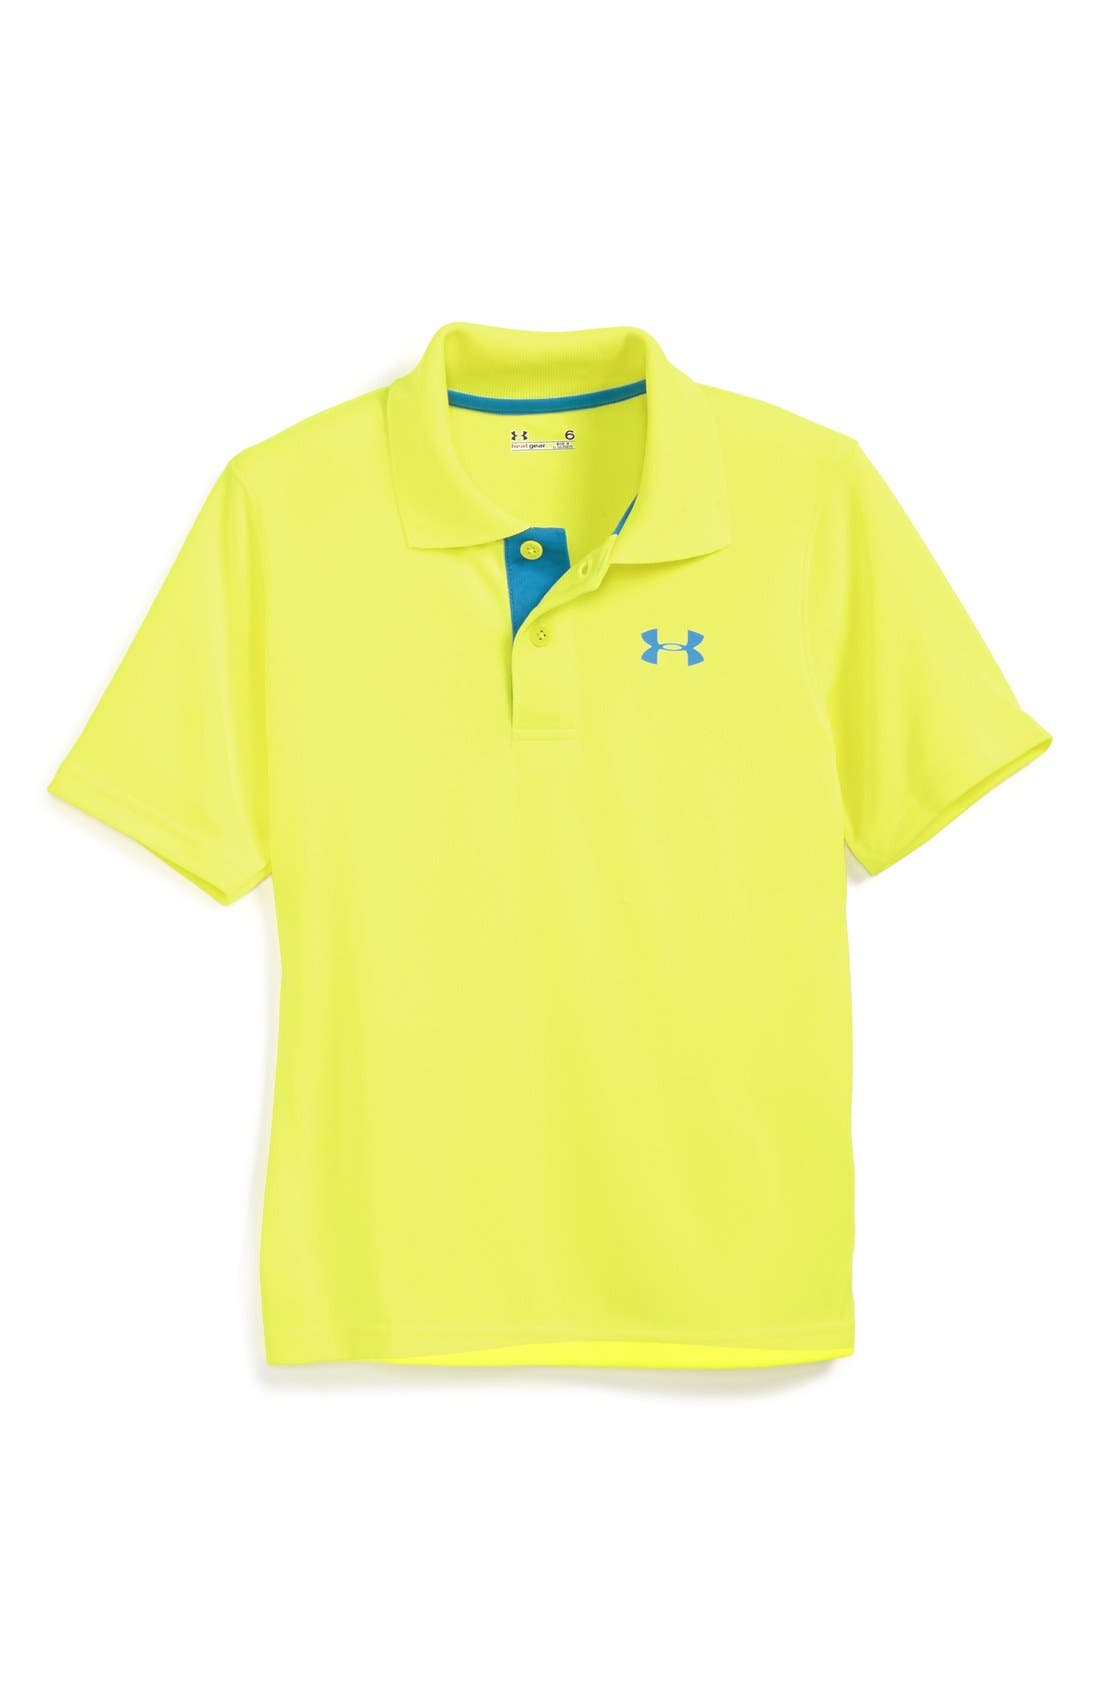 Alternate Image 1 Selected - Under Armour 'Match Play' Polo (Little Boys)